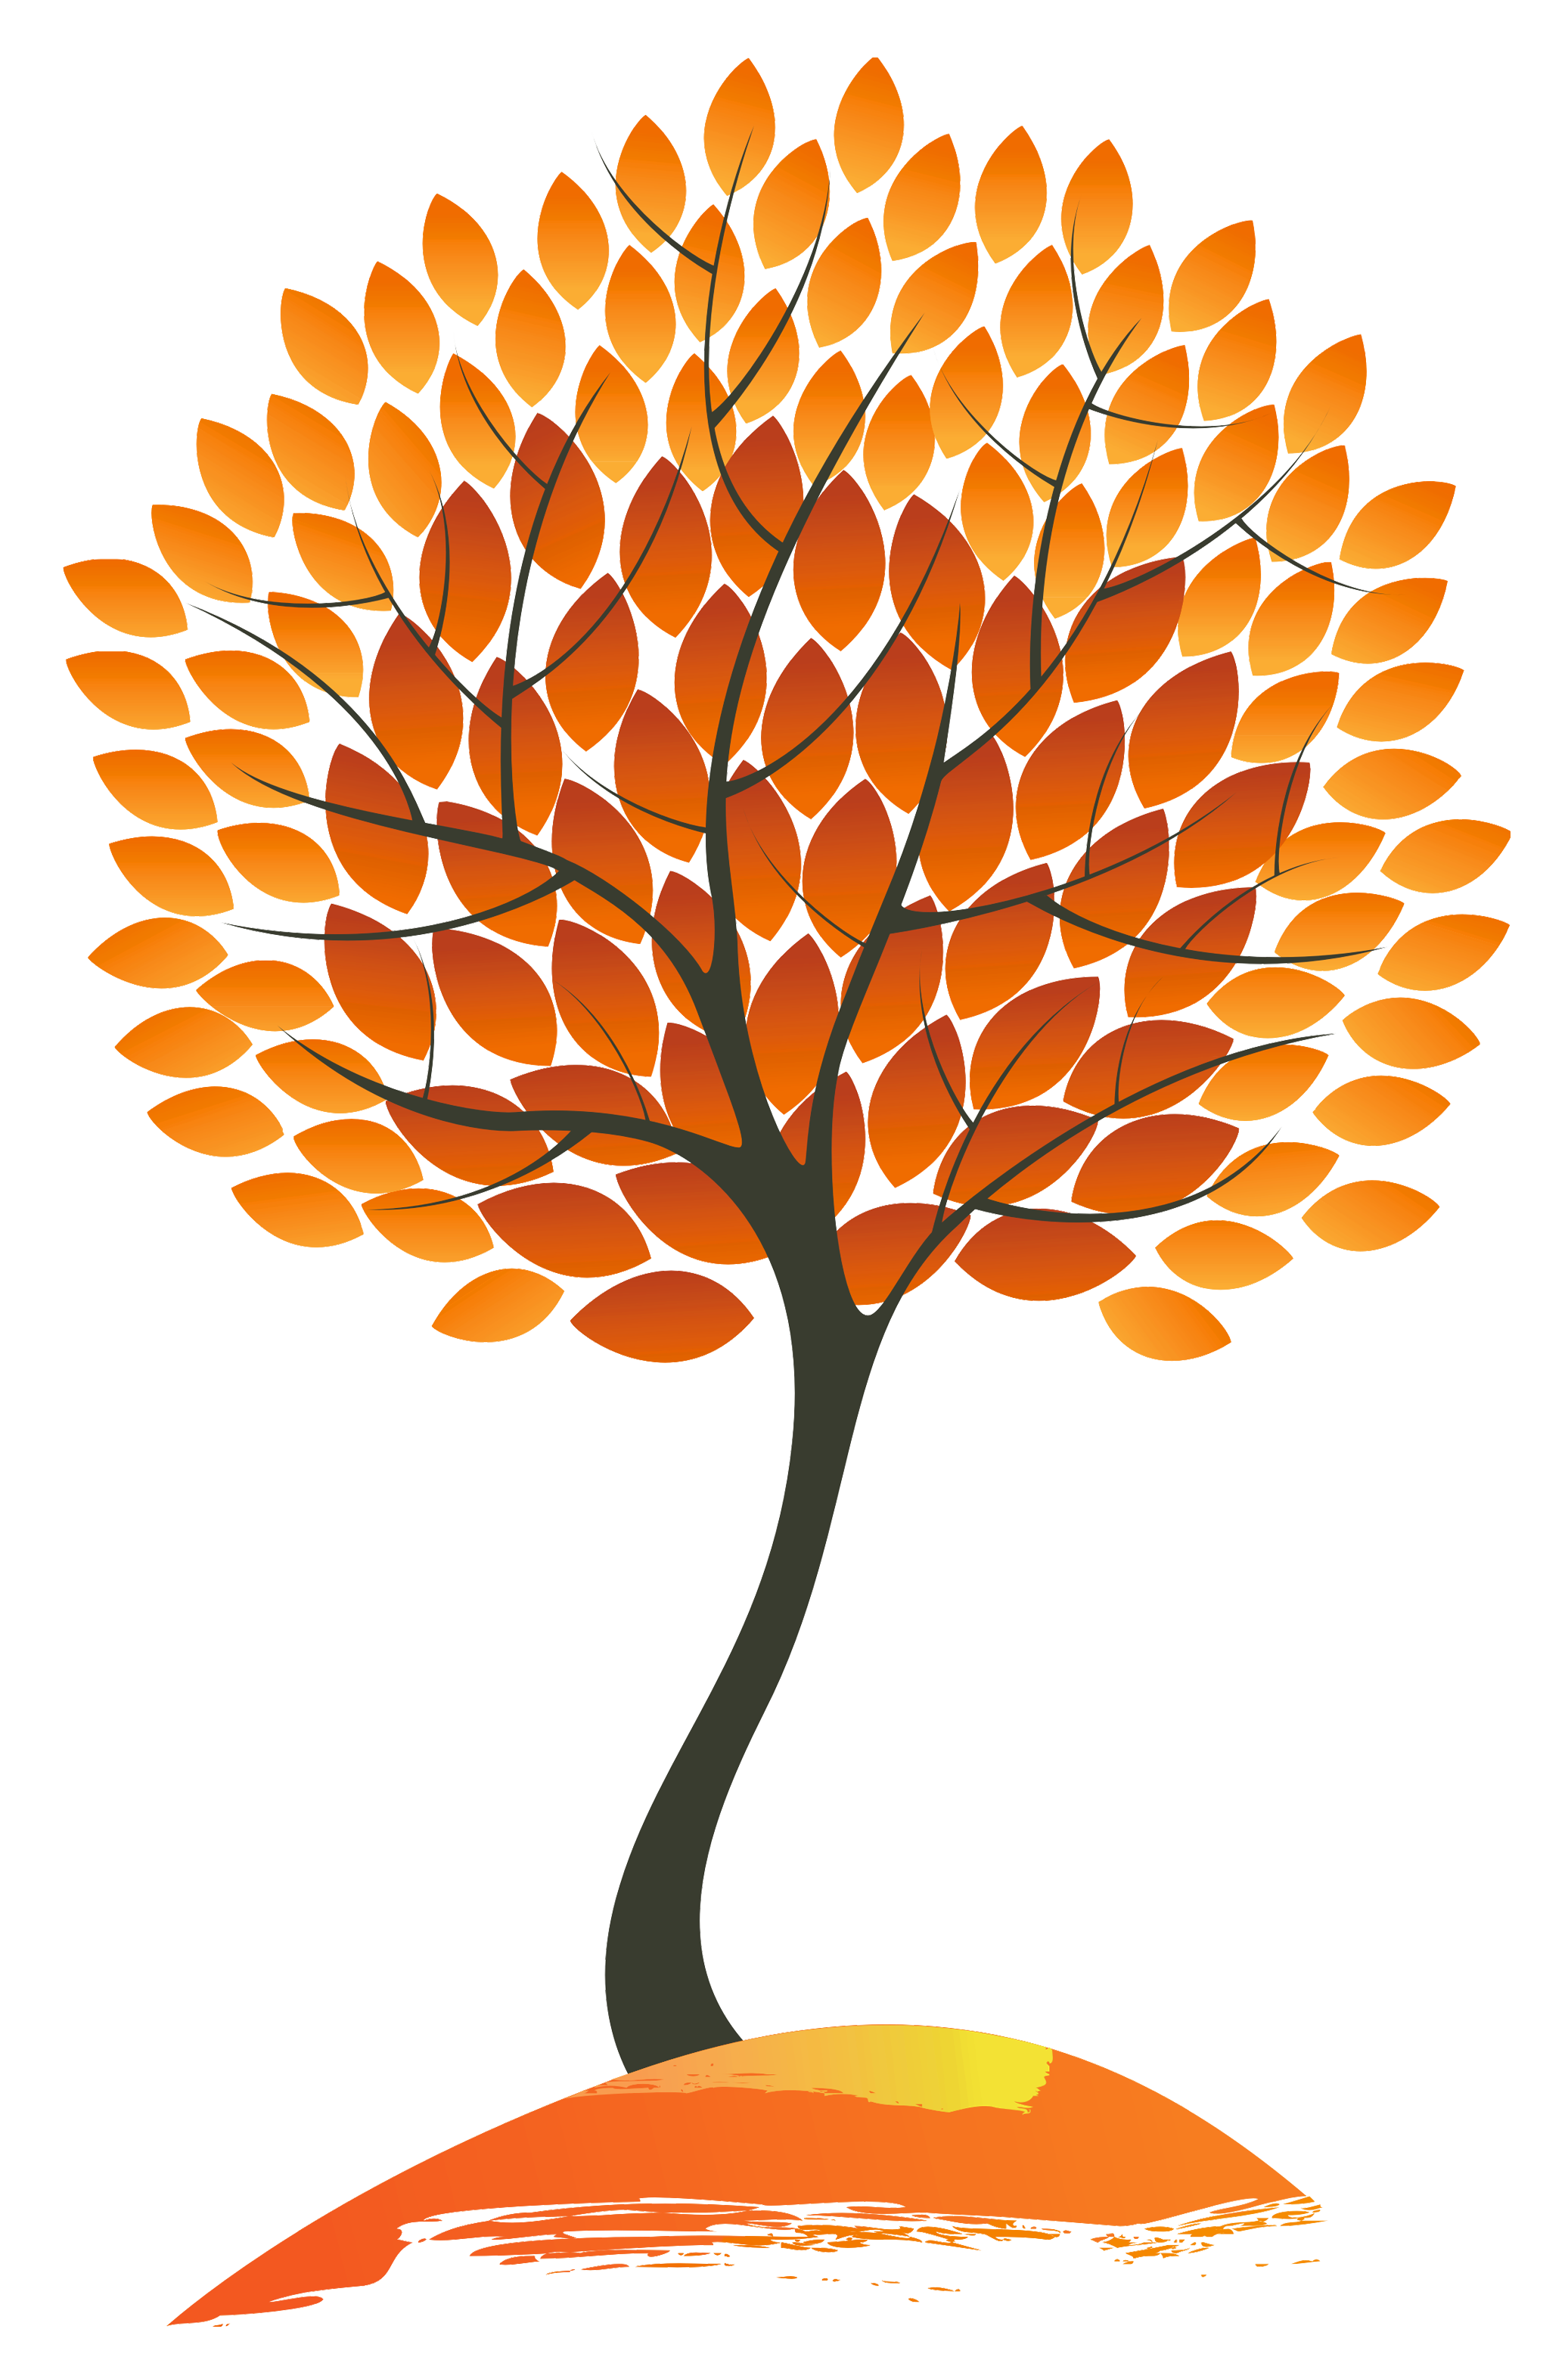 Autumn Tree PNG Clipart Image.